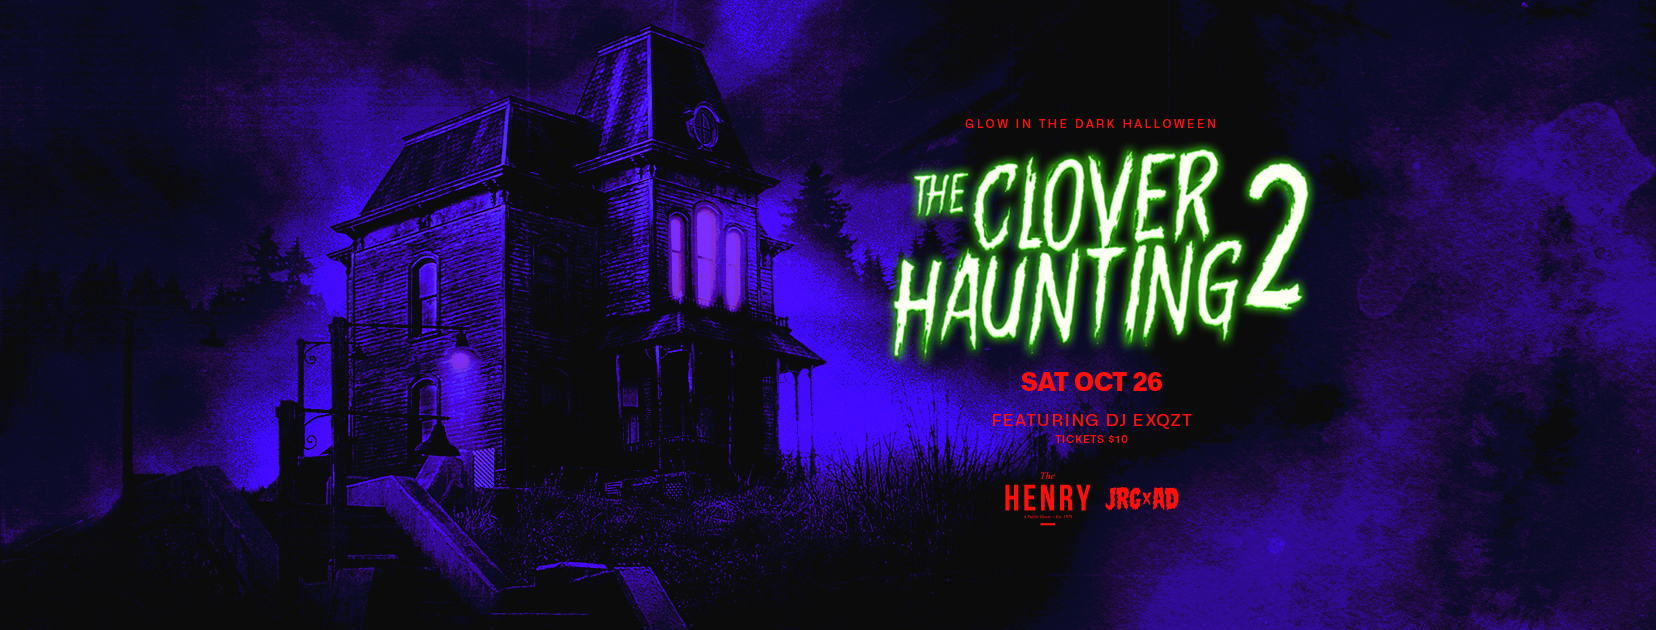 The Clover Haunting 2: Glow In The Dark Edition Halloween at The Henry